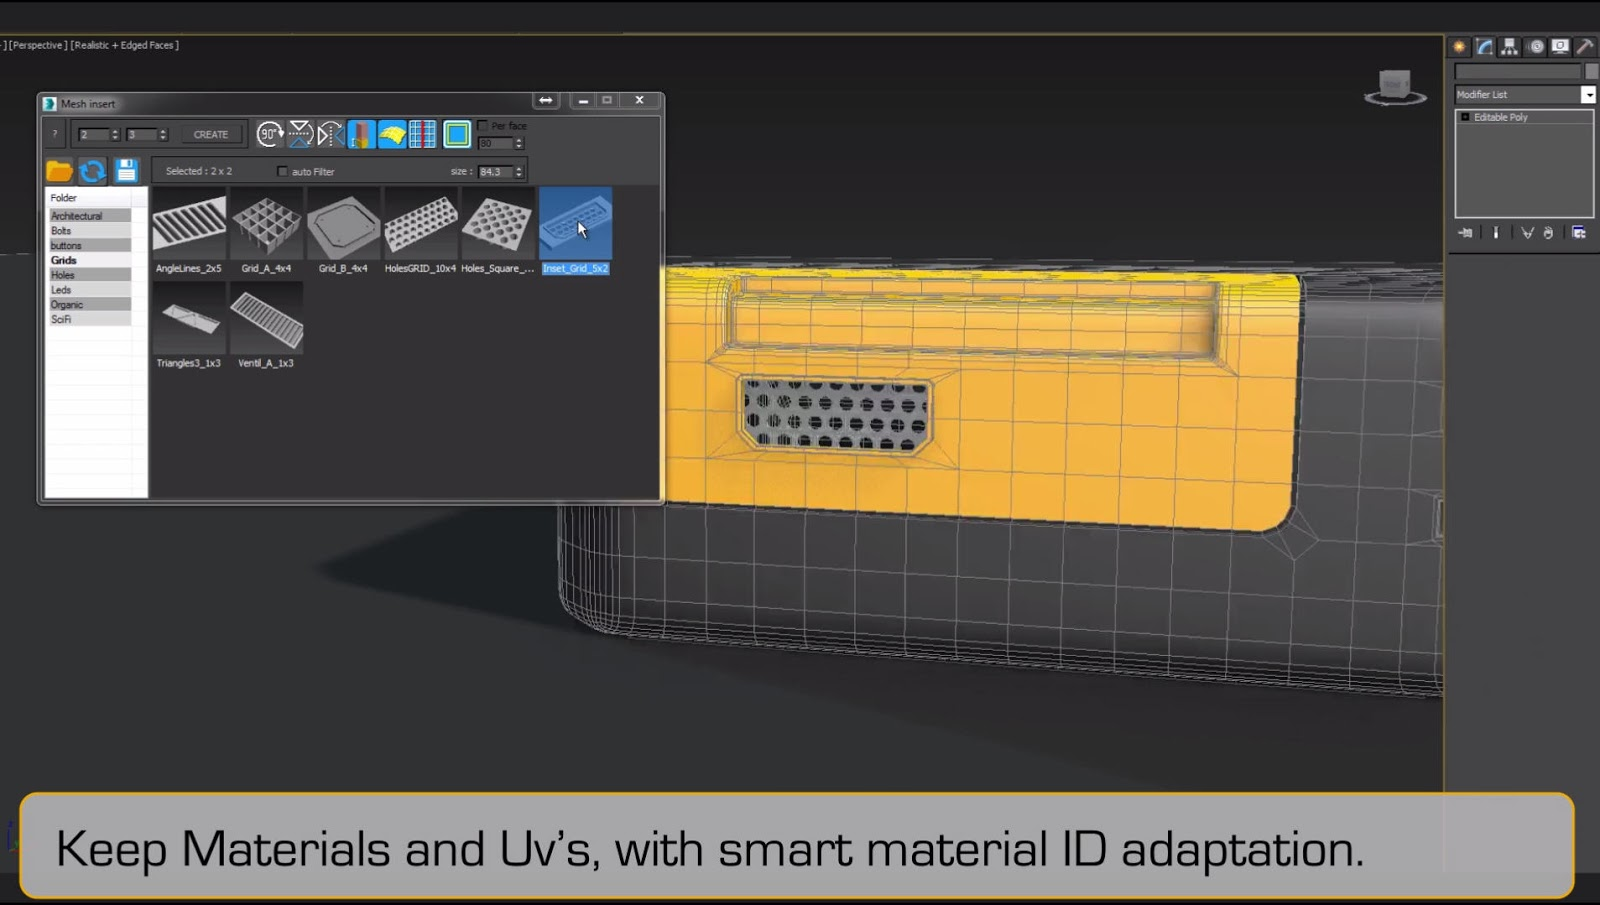 Mesh Insert 1 02 for 3ds Max 2013 - 2018 - Plugins Reviews and